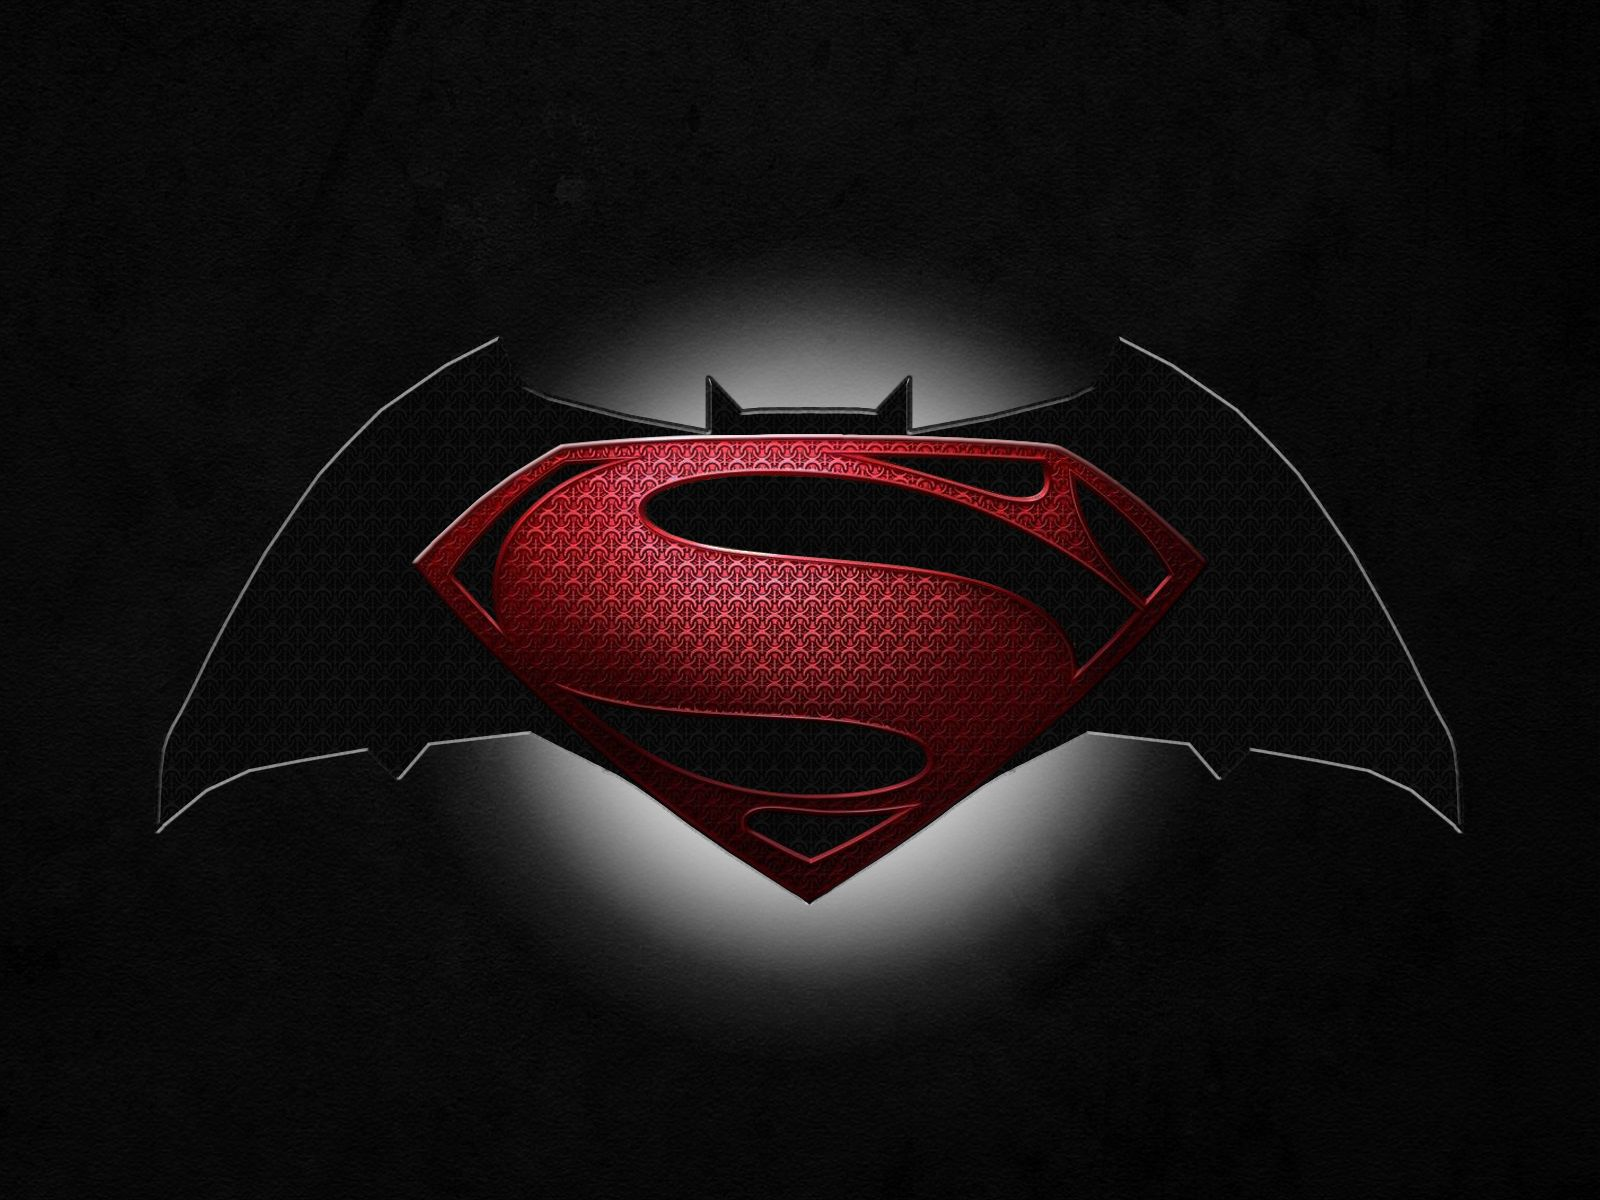 Is The New Batman Vs Superman Movie A Warning Of A Biological